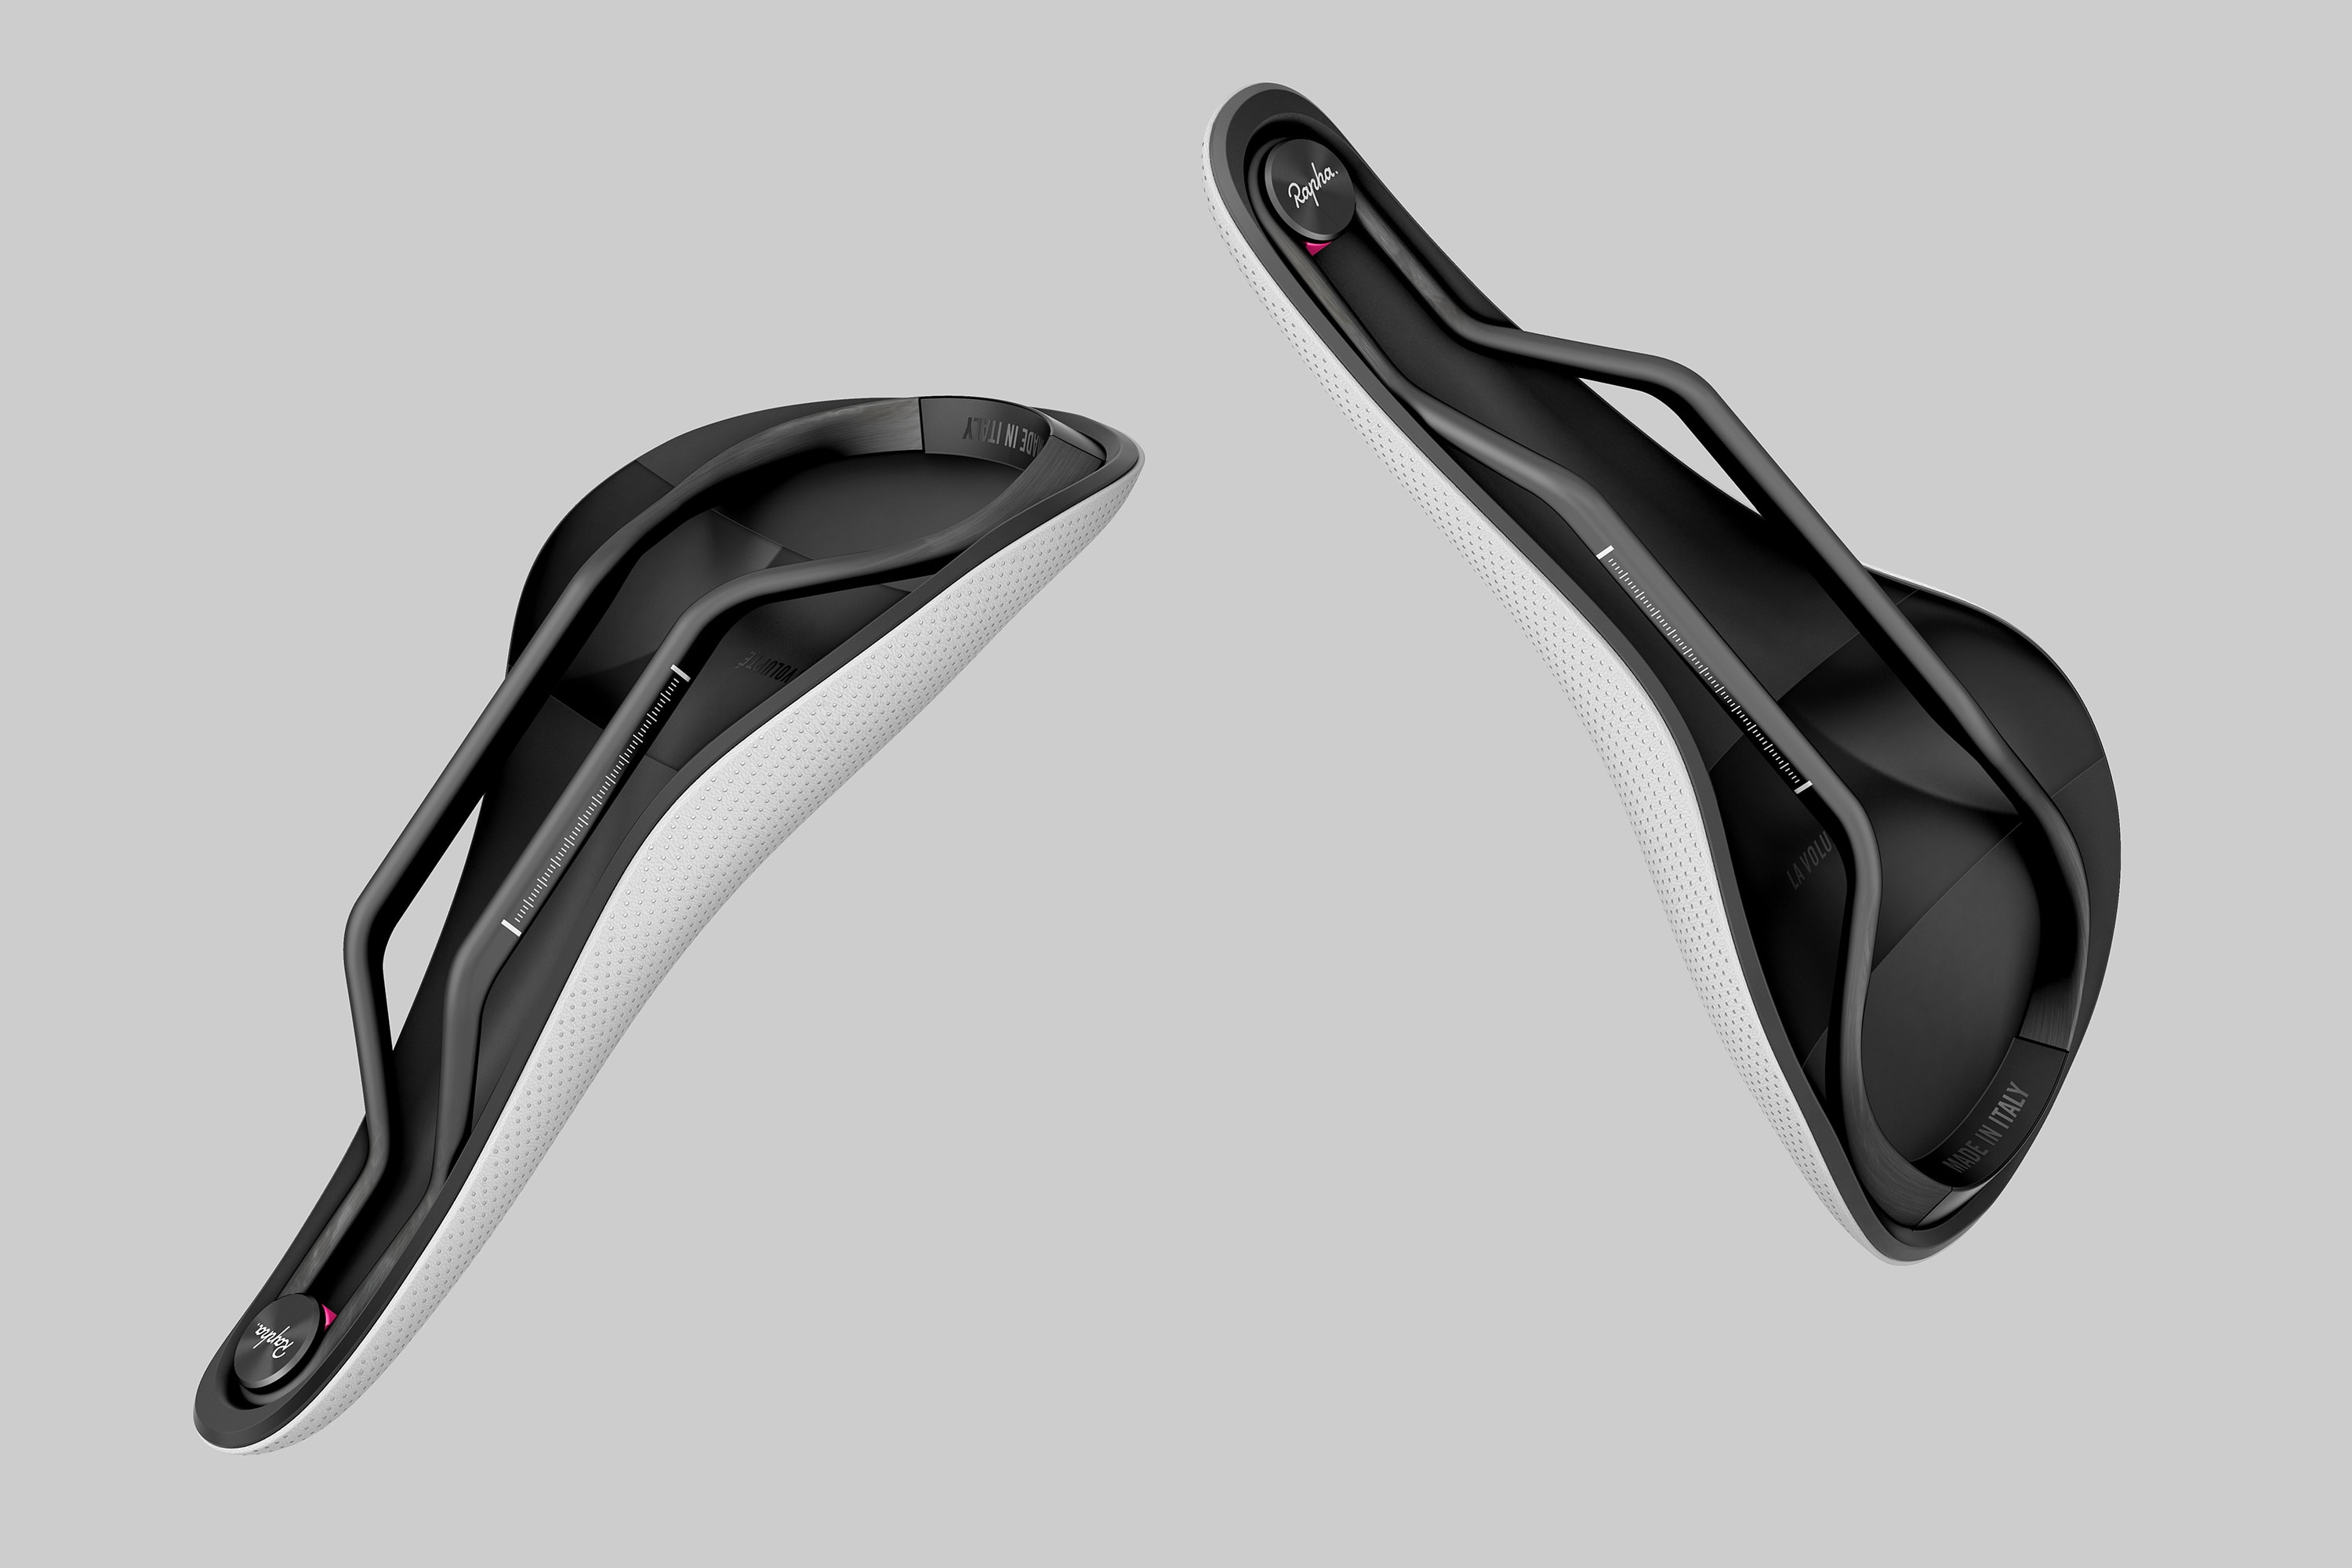 Perspective view of two Rapha Saddles floating against a light grey background. The image shows the underside of the saddles with the Rapha logo and parts of the white top surface.